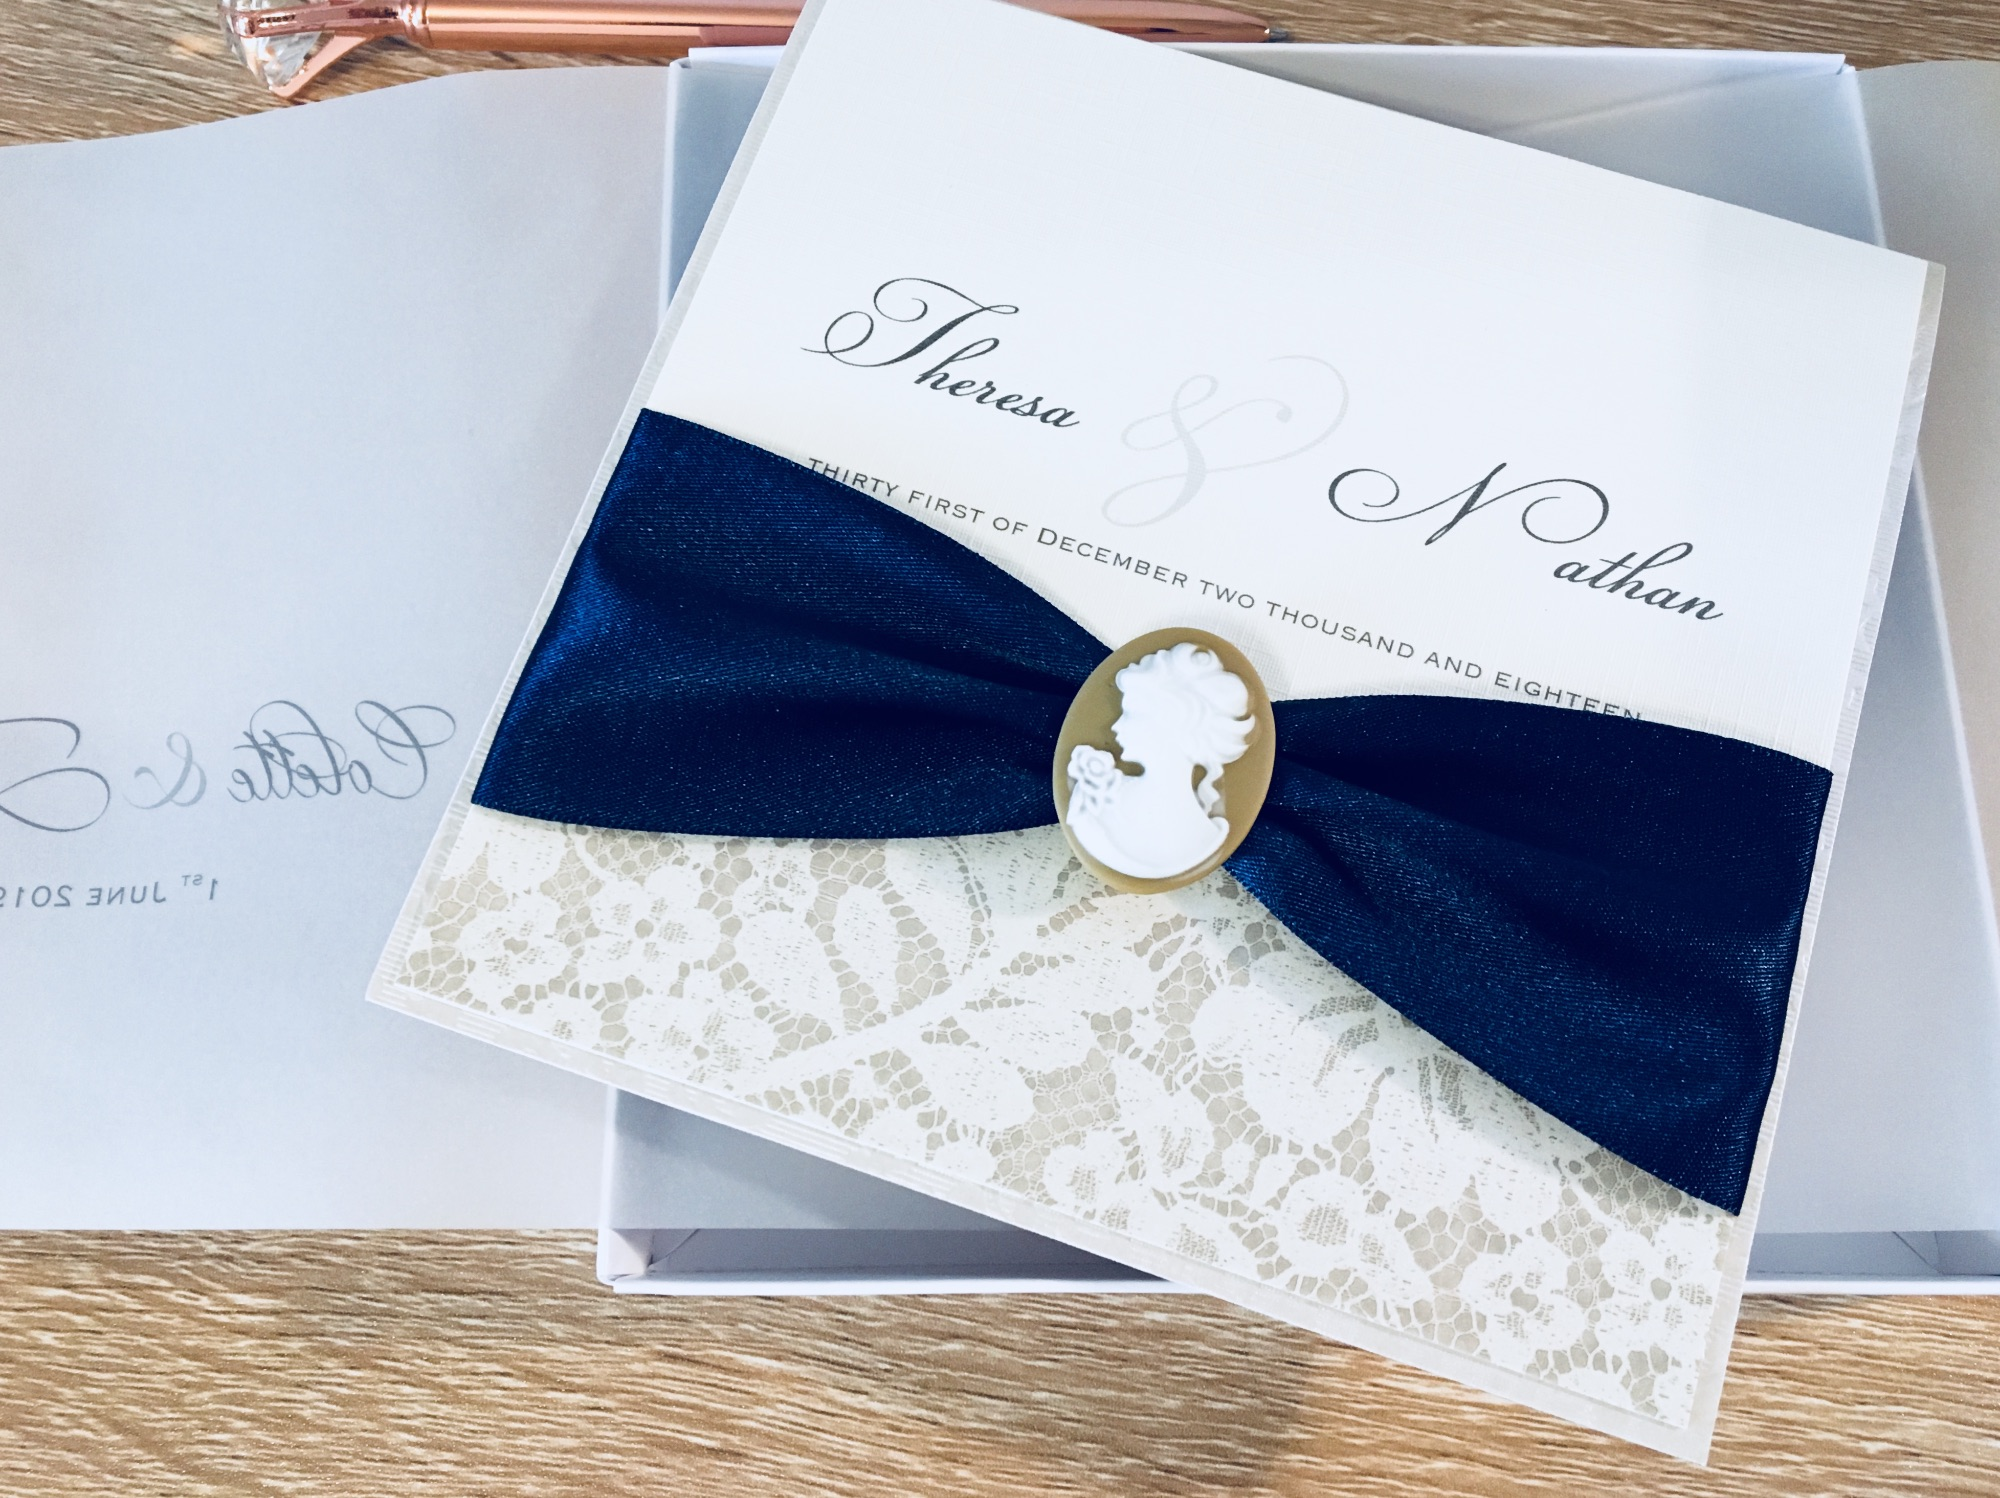 Italian cameo luxury wedding invitations